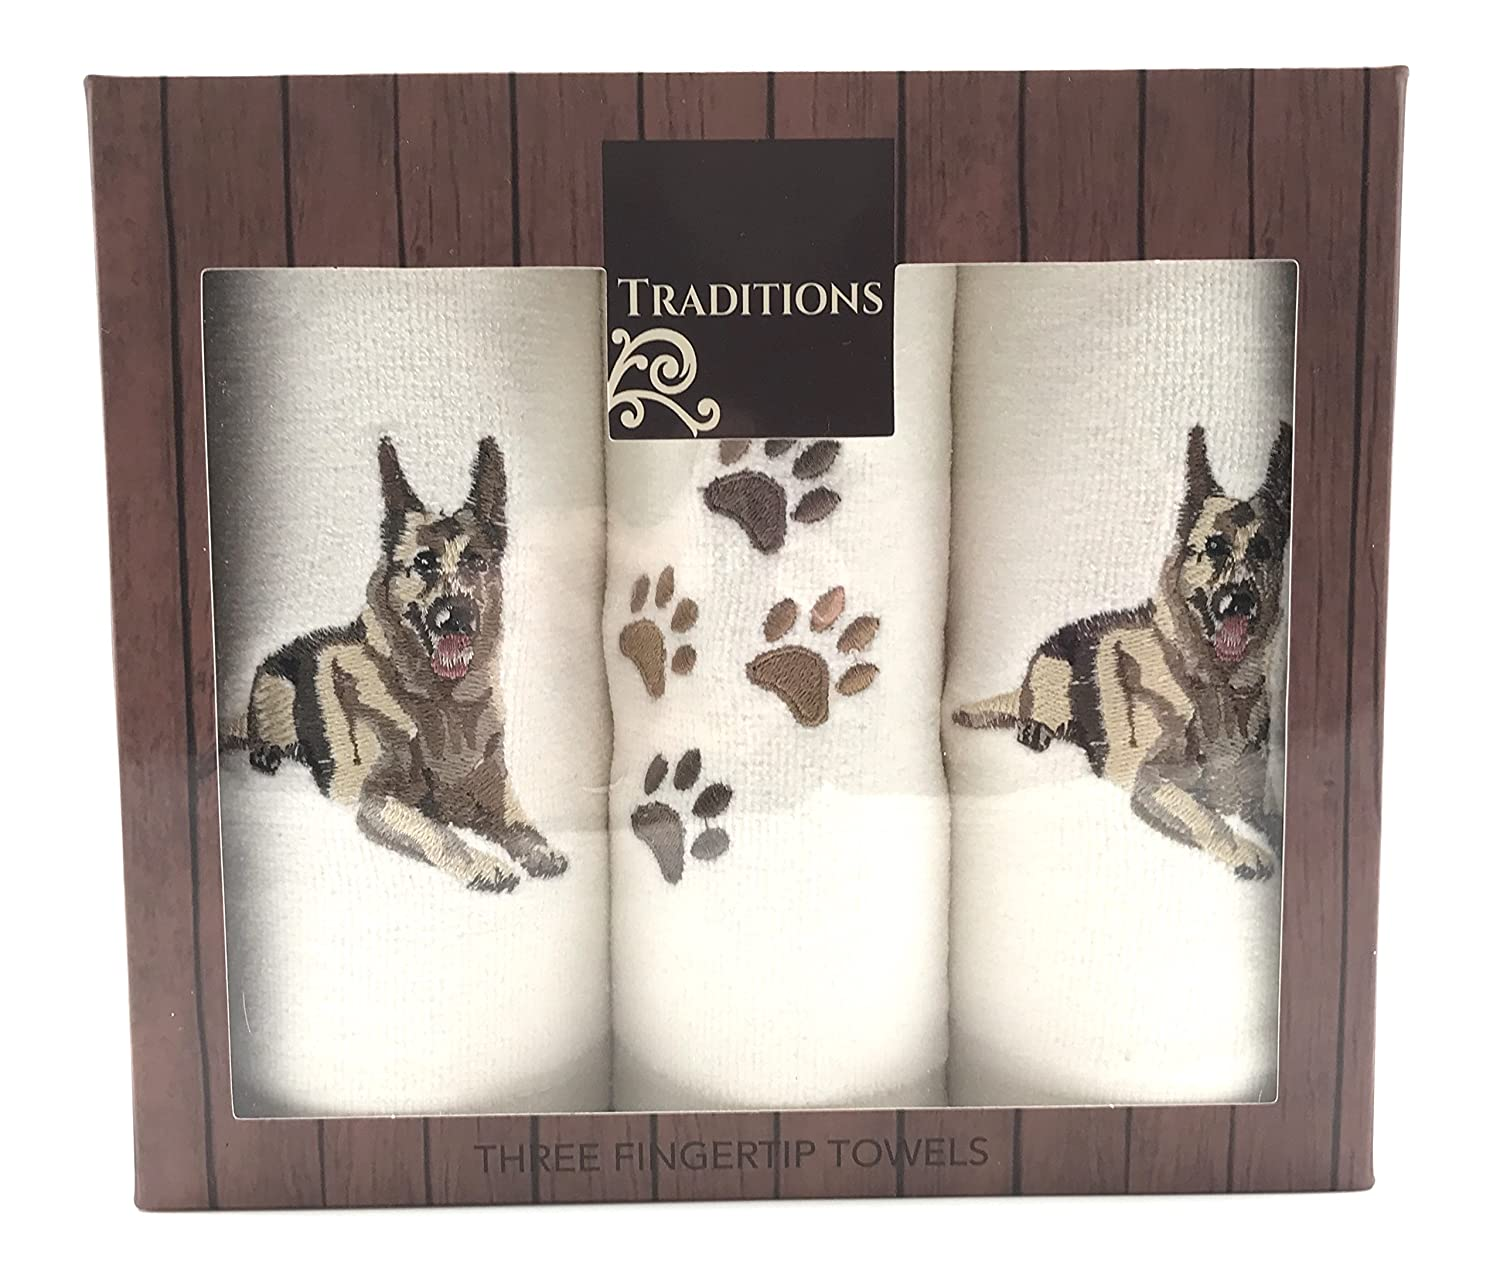 Traditions Holiday Christmas Cotton Tip Towels: Decorative Embroidered Dog Design, 3 Piece Gift Pack (Boxer) Nantucket Distributing